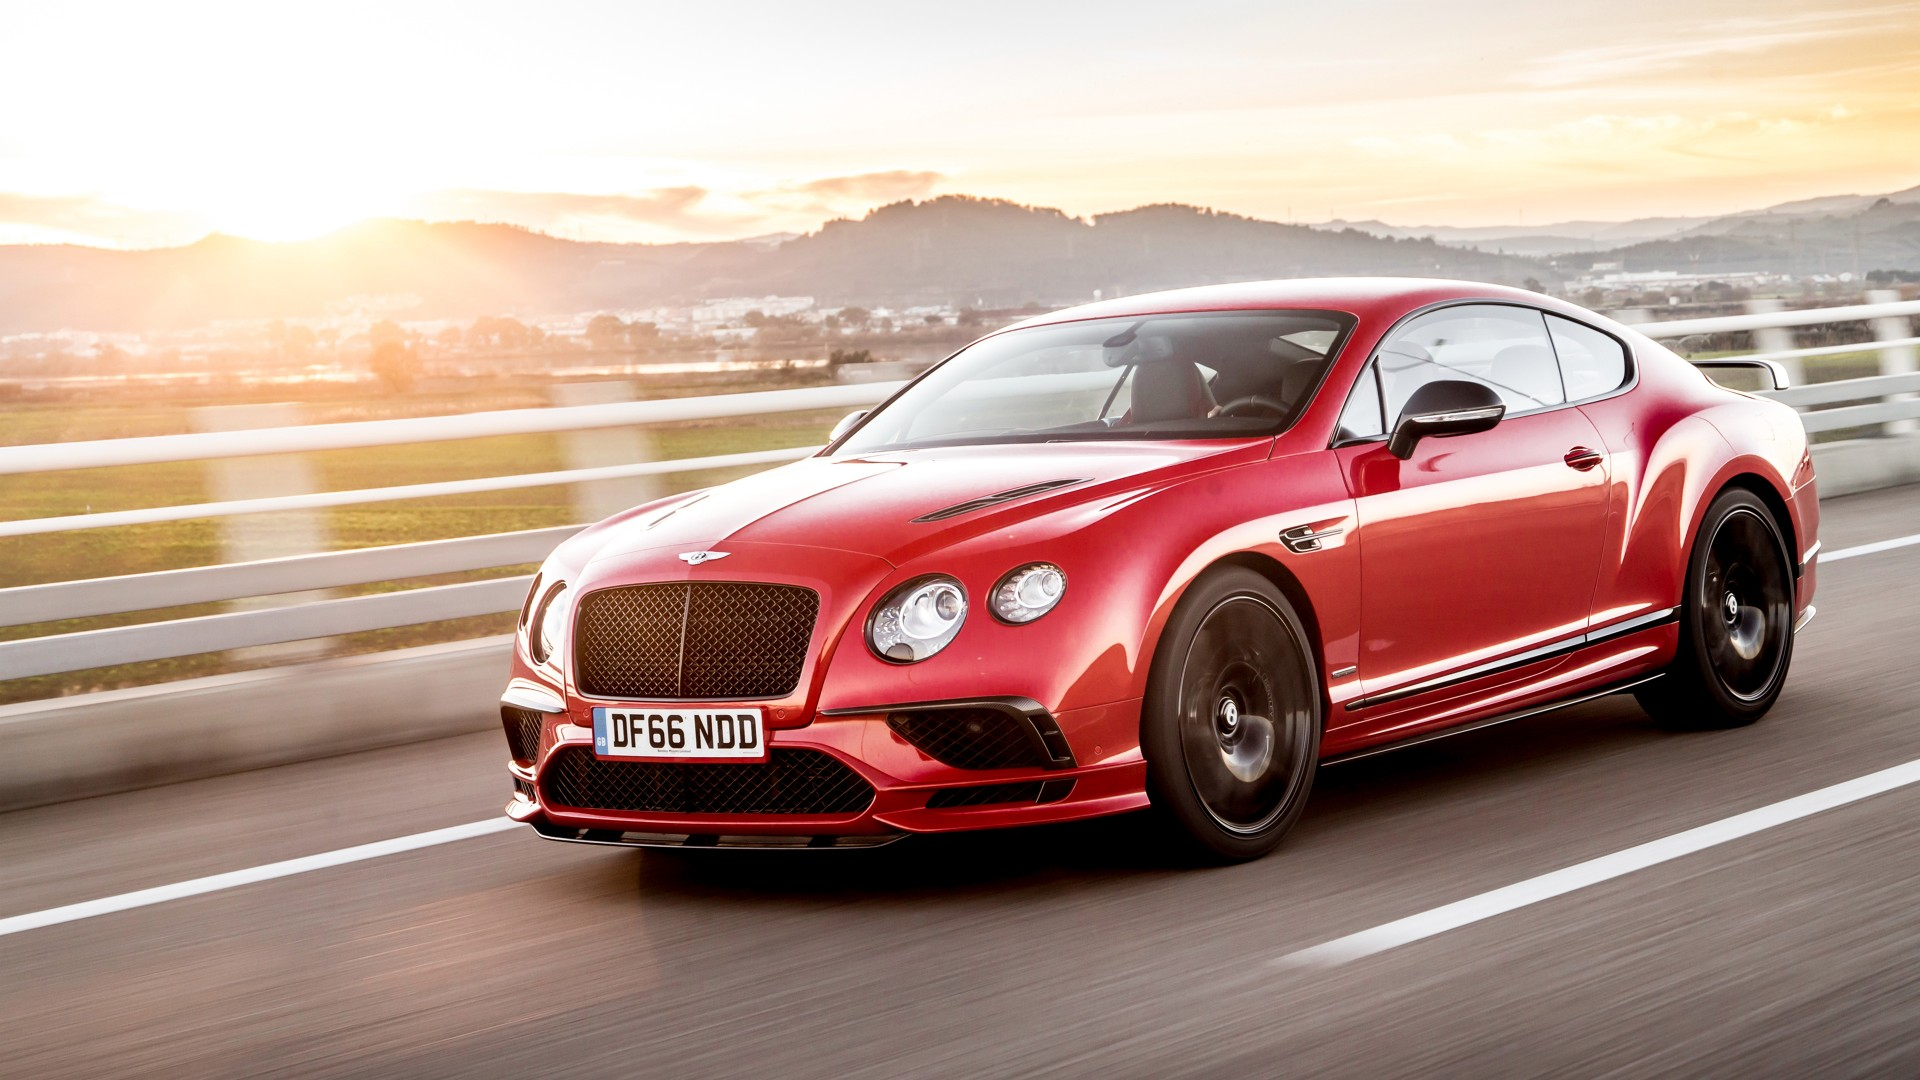 Hd Car Wallpapers 1080p Download Bentley Continental Supersports 2017 4k Wallpapers Hd